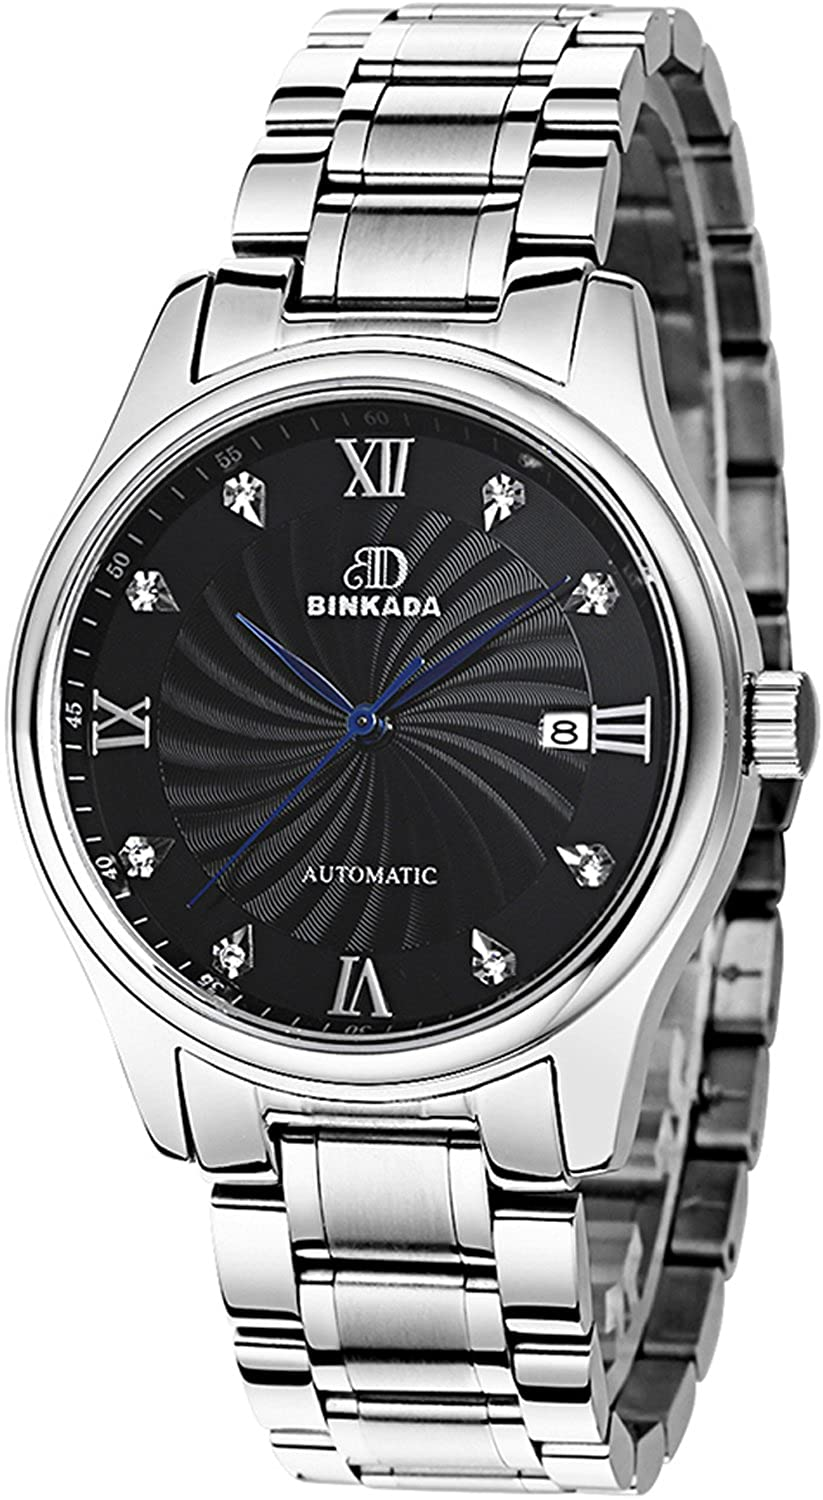 BINKADA Unique self-motion Stainless Stellバンドブラックダイヤルメンズ腕時計# 7001 N01 – 2 B01DZK89RW